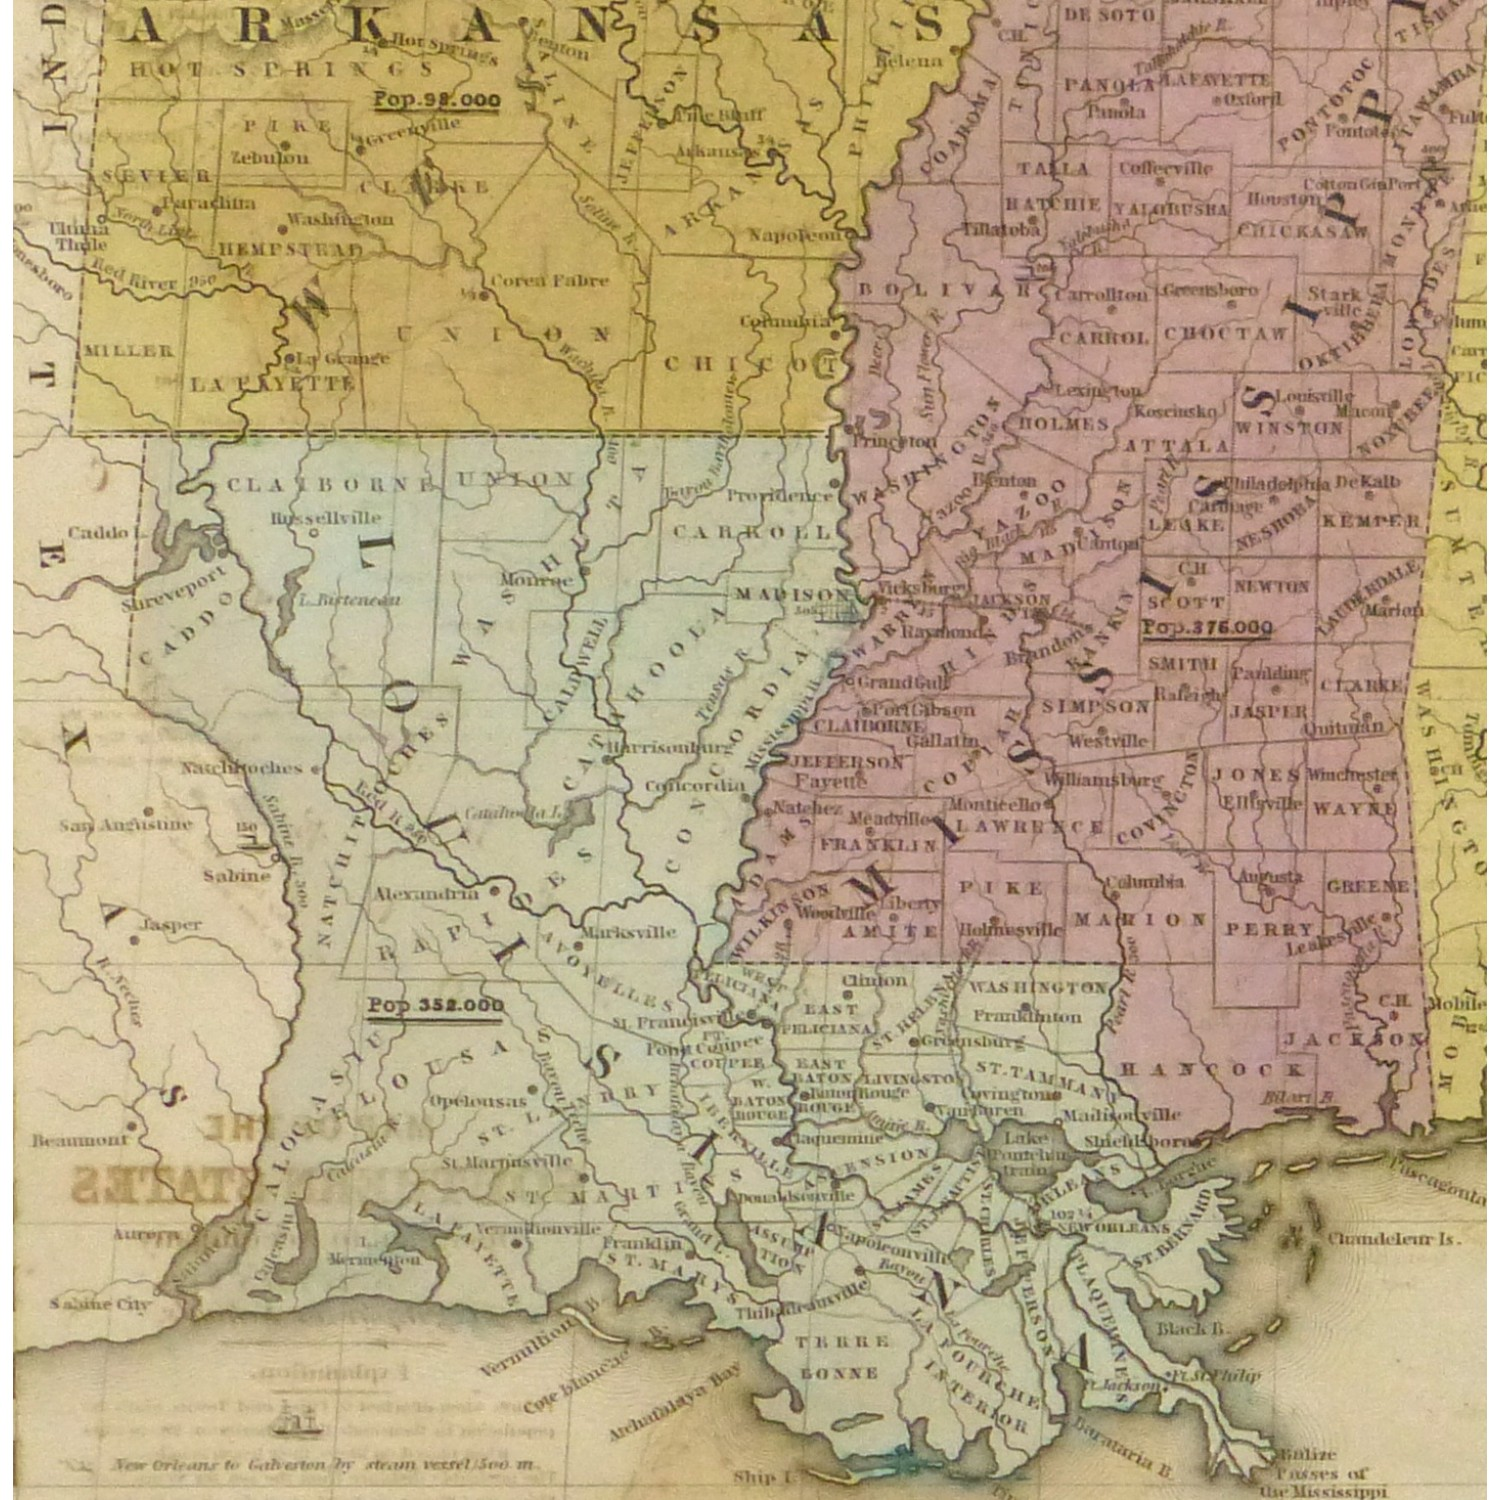 Map - Southern United States, 1839 - Original Art, Antique Maps & Prints